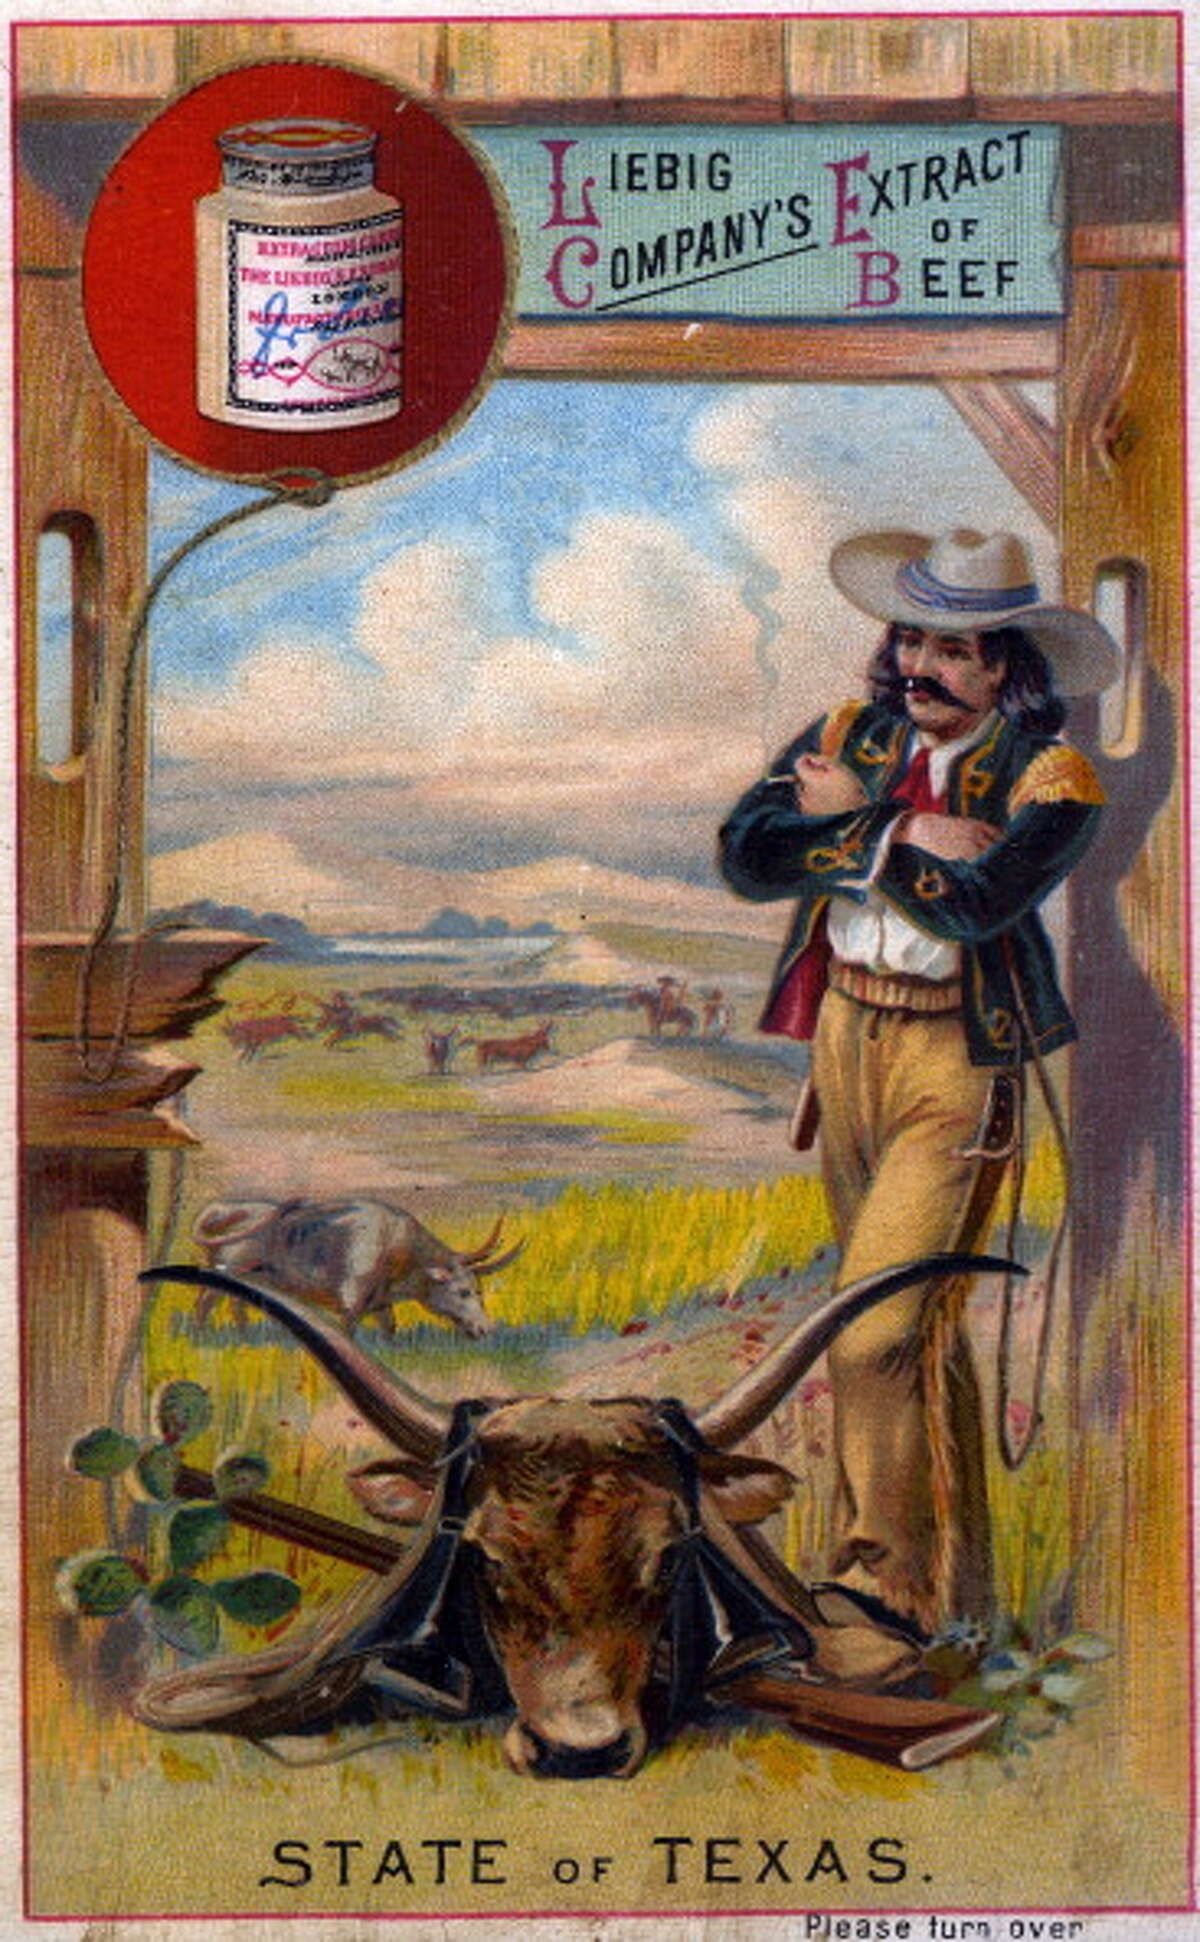 This advertising trade card is produced circa 1890 in Paris, France.